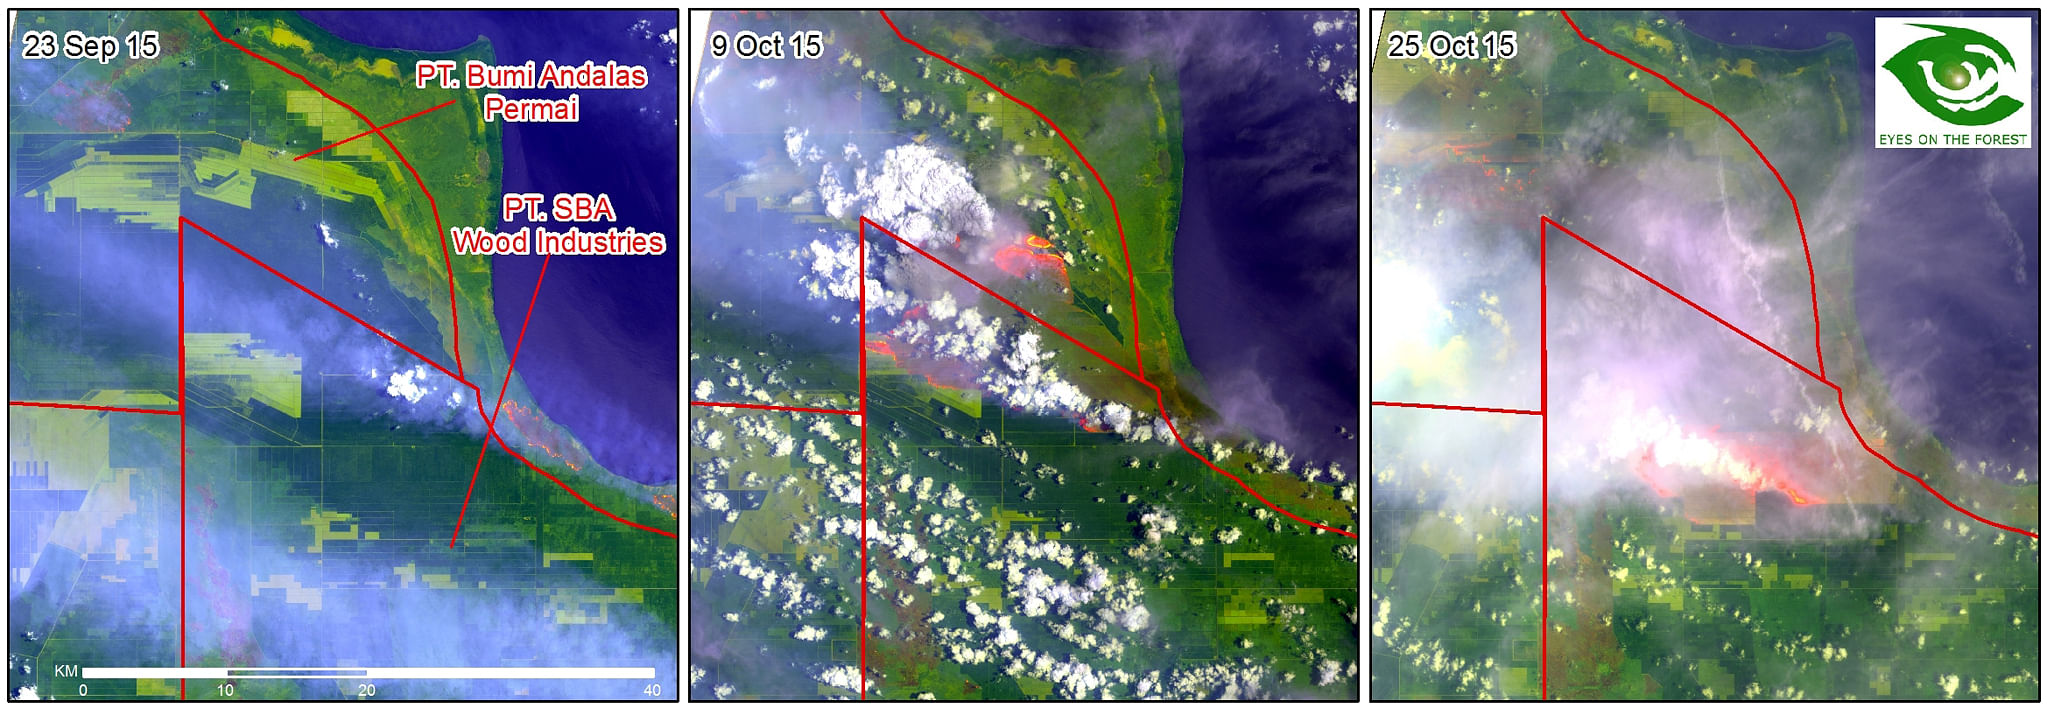 "Satellite imagery of concessions belonging to Bumi Andalas Permai and Sebangun Bumi Andalas Wood Industries in South Sumatra shows the progression of fires. The firms and Bumi Mekar Hijau have received ""Preventative Measures Notices"" from Singapore's"